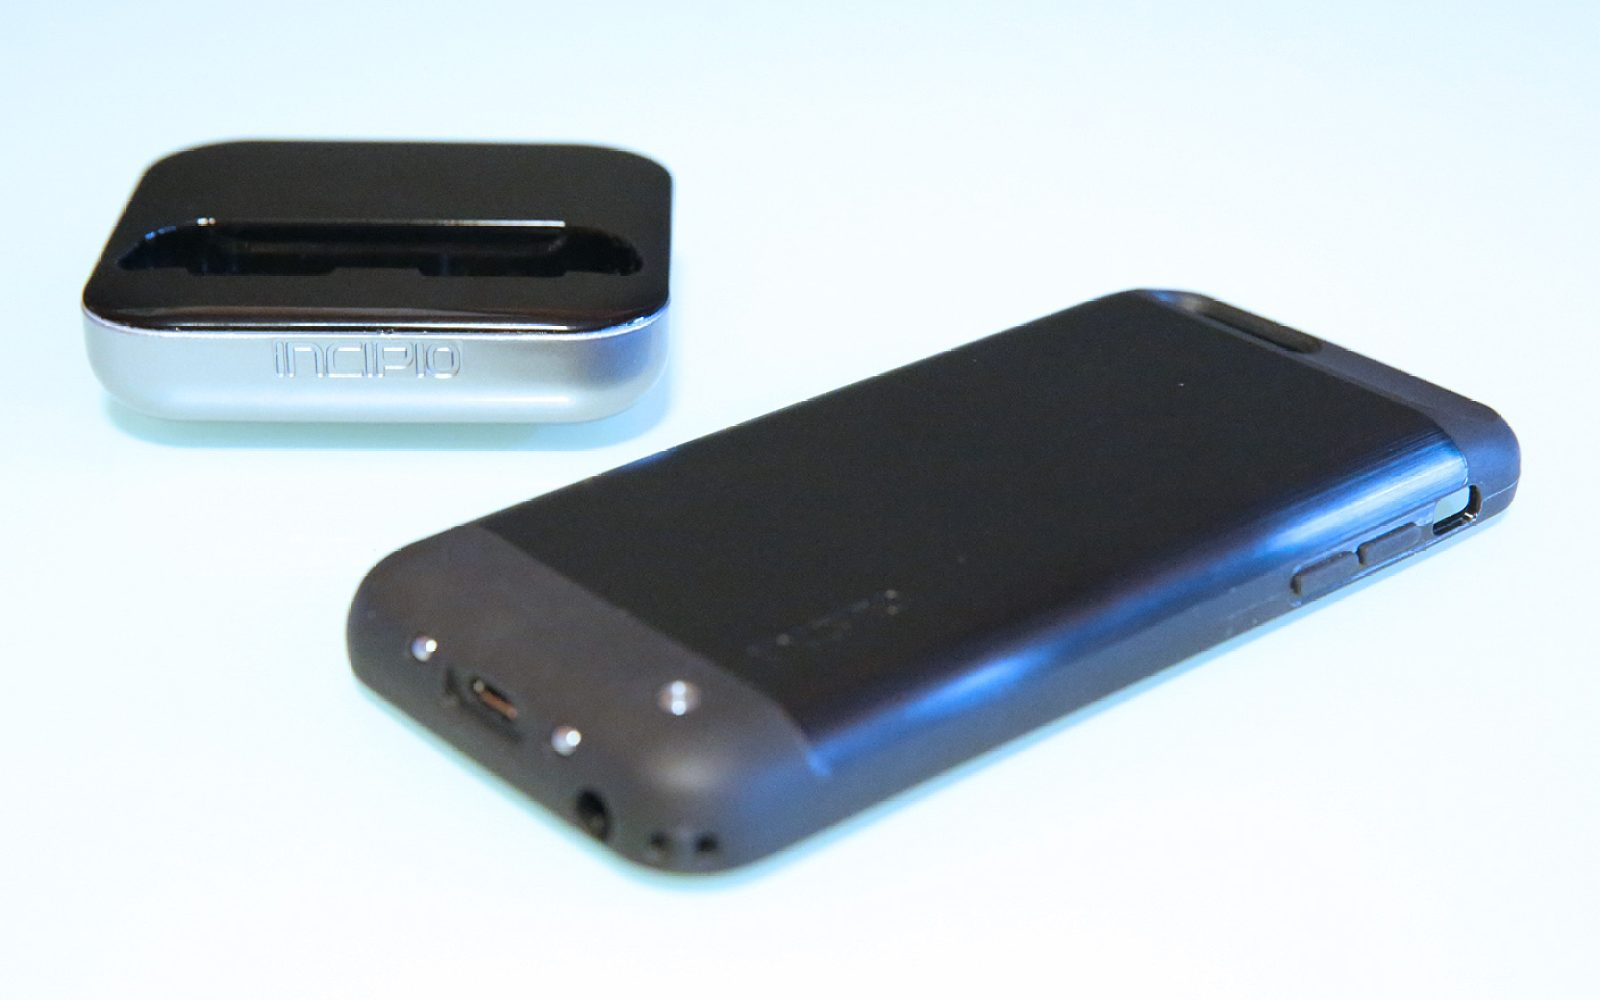 new styles 3ff90 8e53d Review: Incipio's offGRID Shine expands iPhone 6 battery cases with ...